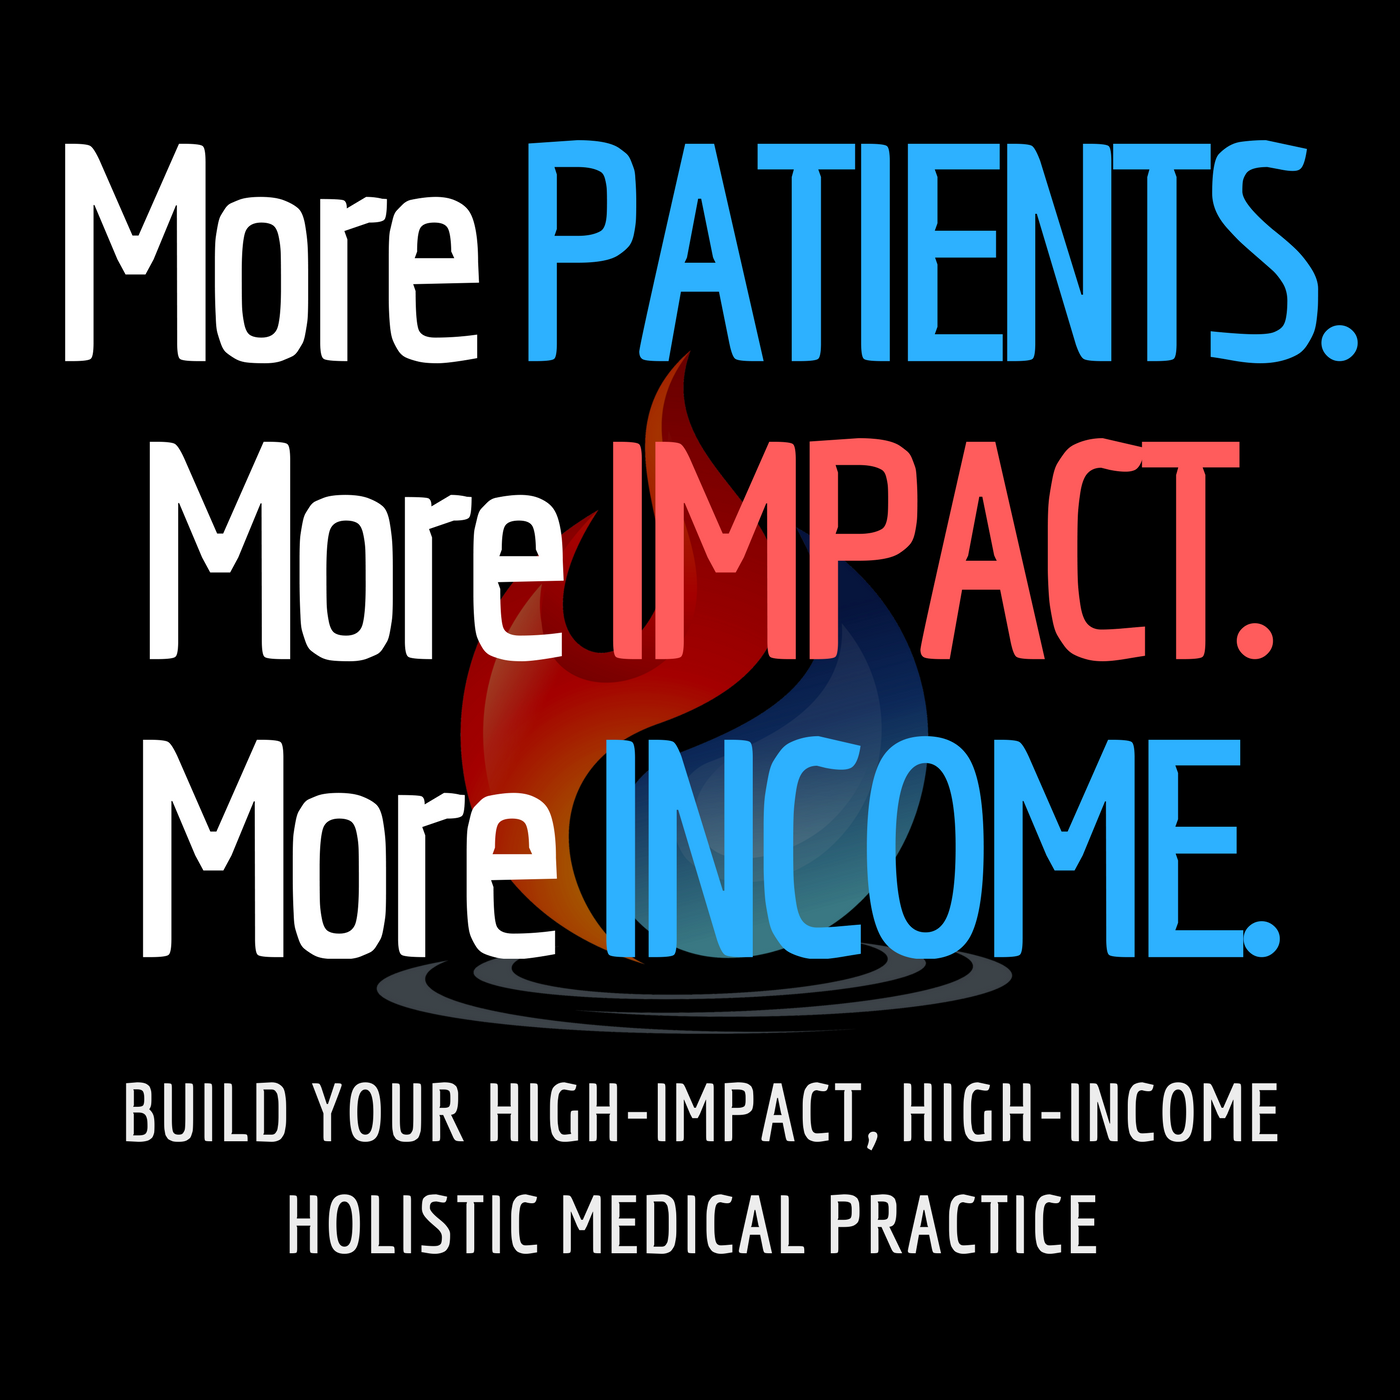 More Patients. More Impact. More Income